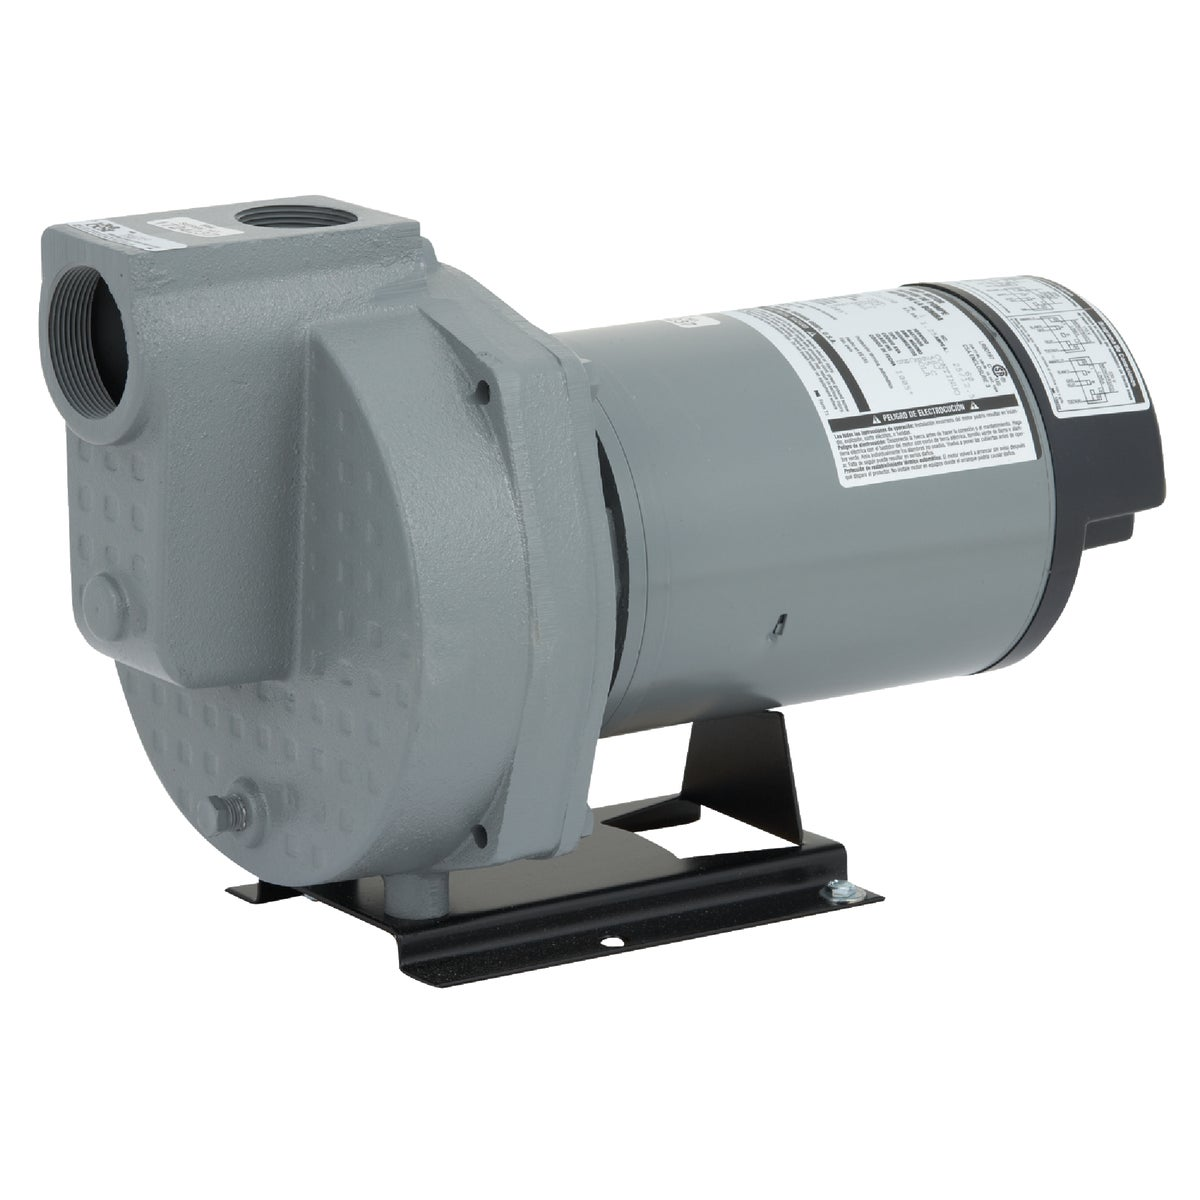 2HP IRRIGATION PUMP - HSPJ20B1 by Star Water Systems